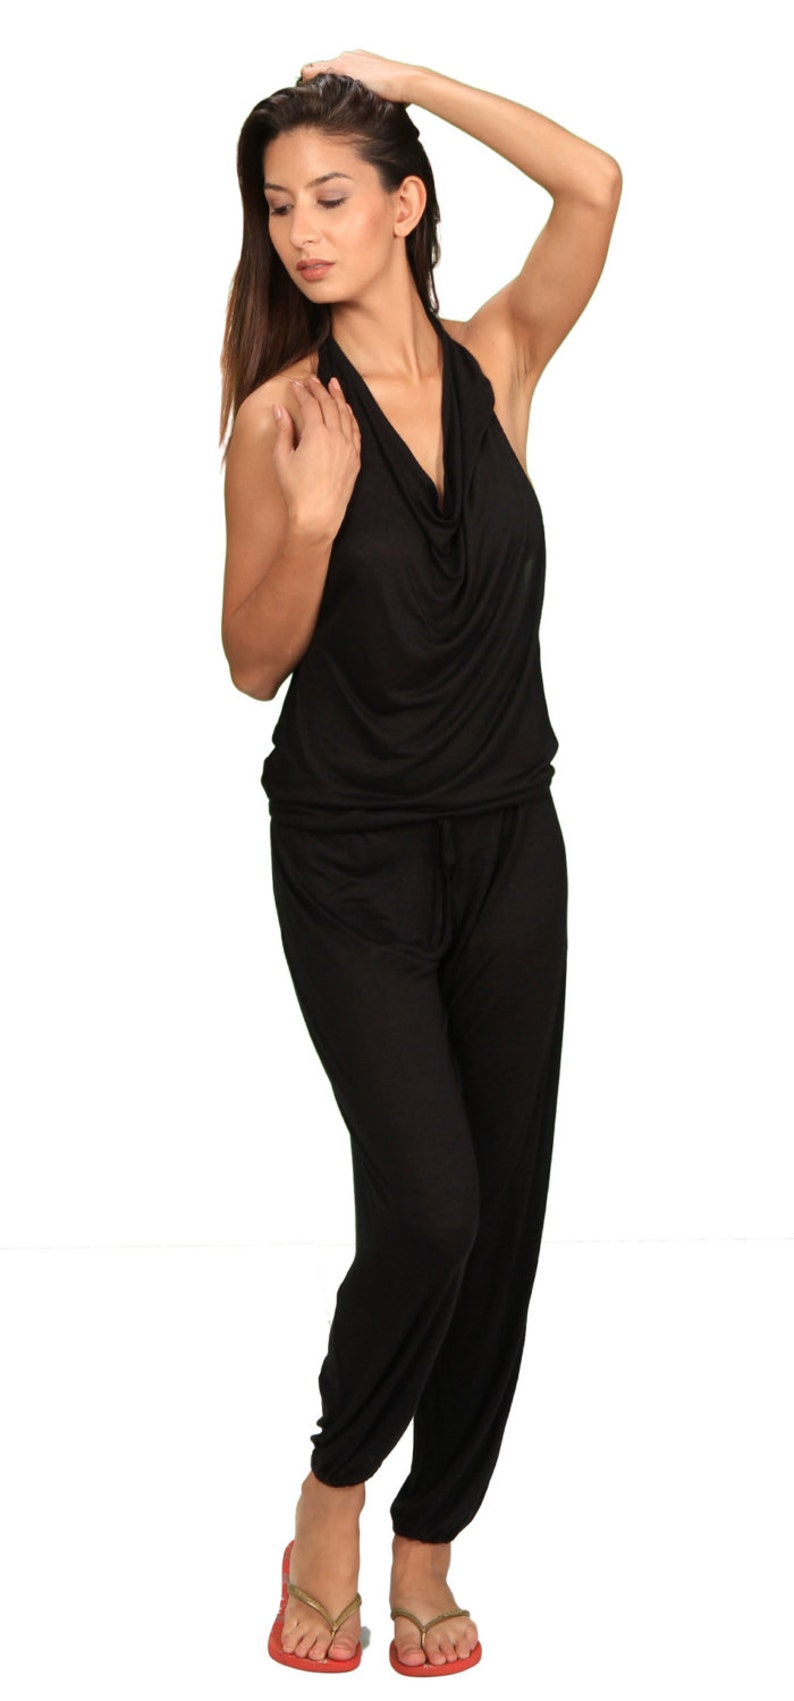 cba6263cd52c Evelina Backless OnePiece Jumpsuit in Black for Womens Summer